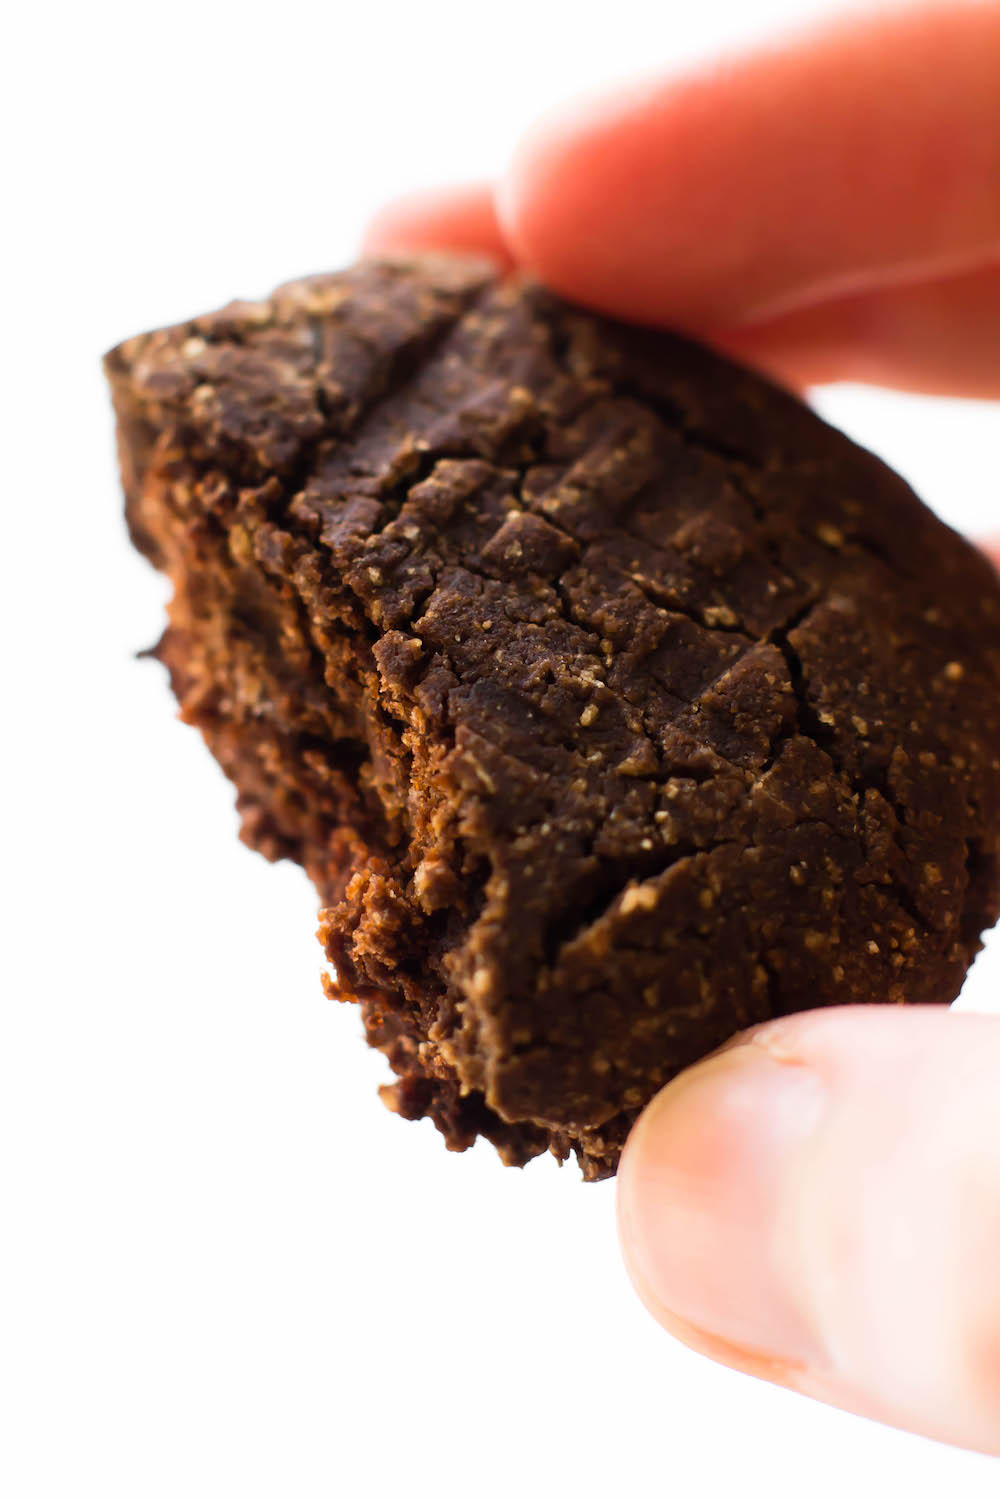 Grain-Free Chocolate Cookies from Be Sol-Ful